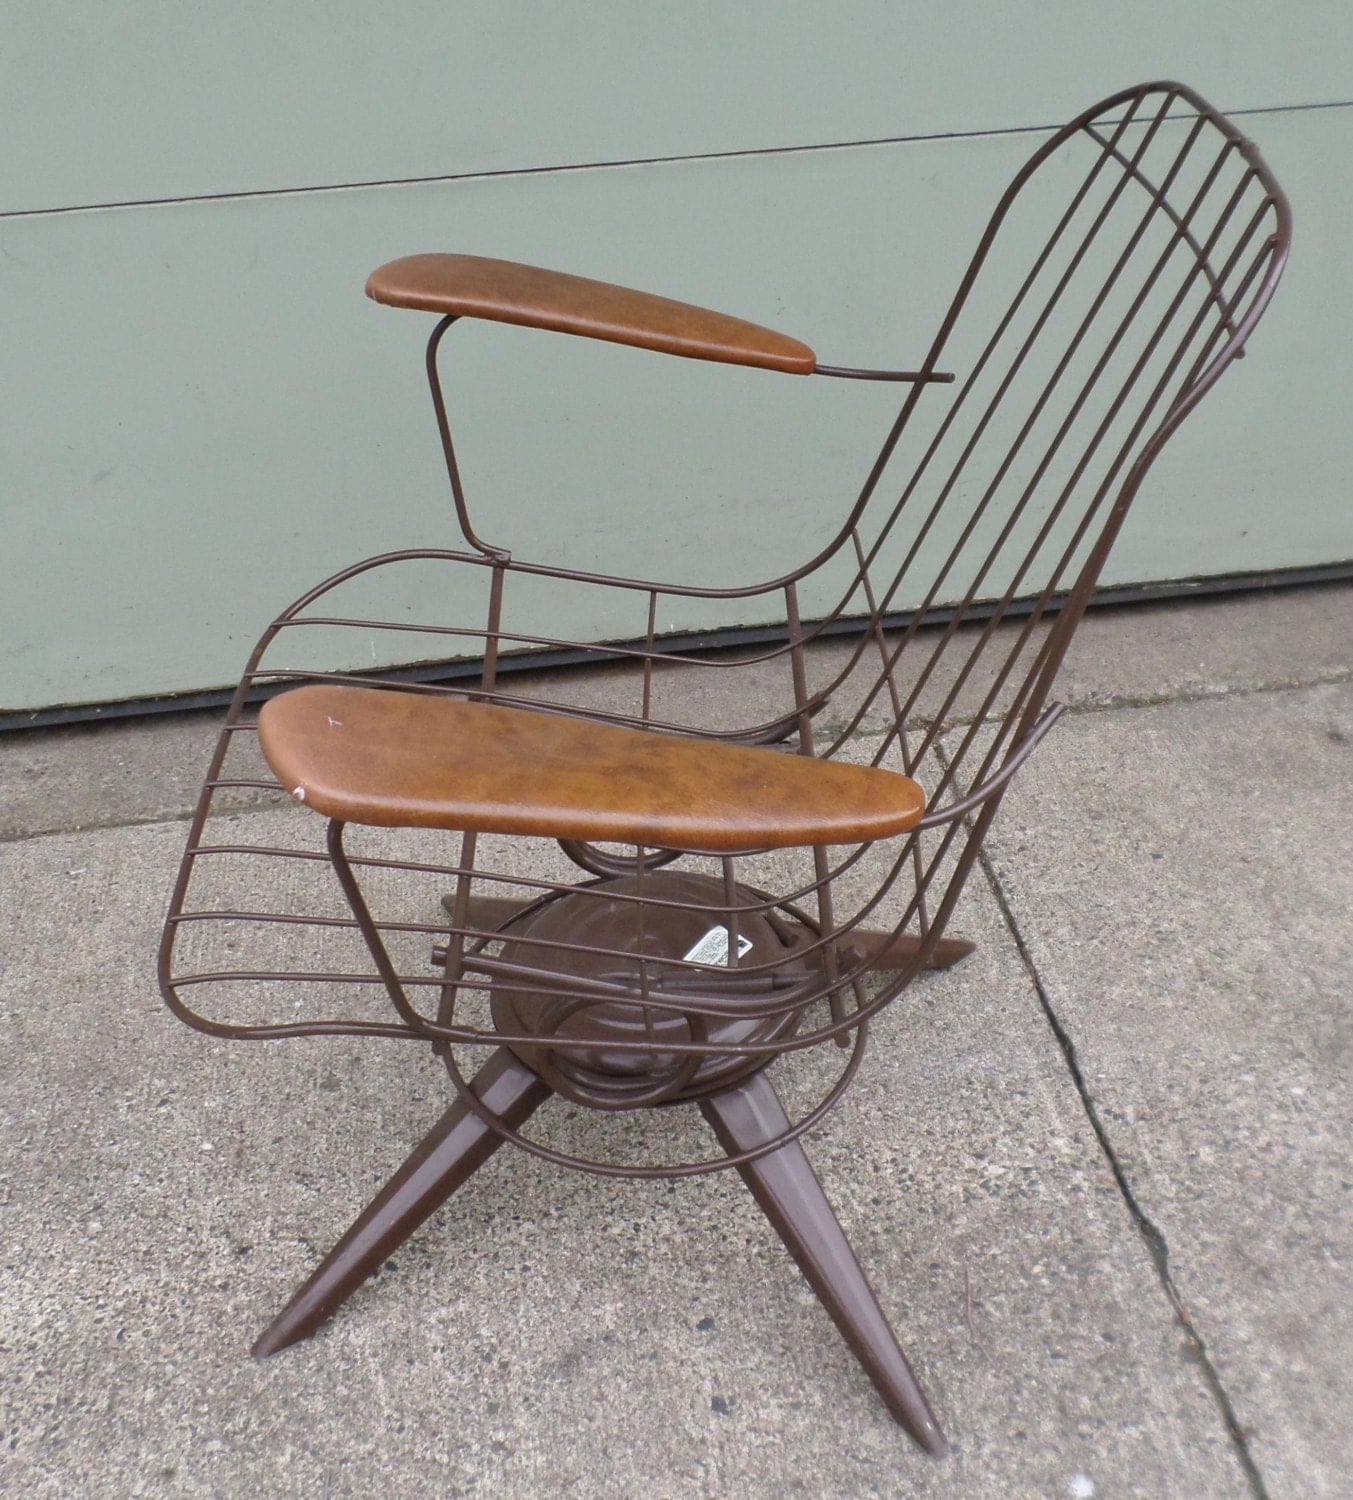 vintage mid century modern eames era wire chair brown. Black Bedroom Furniture Sets. Home Design Ideas